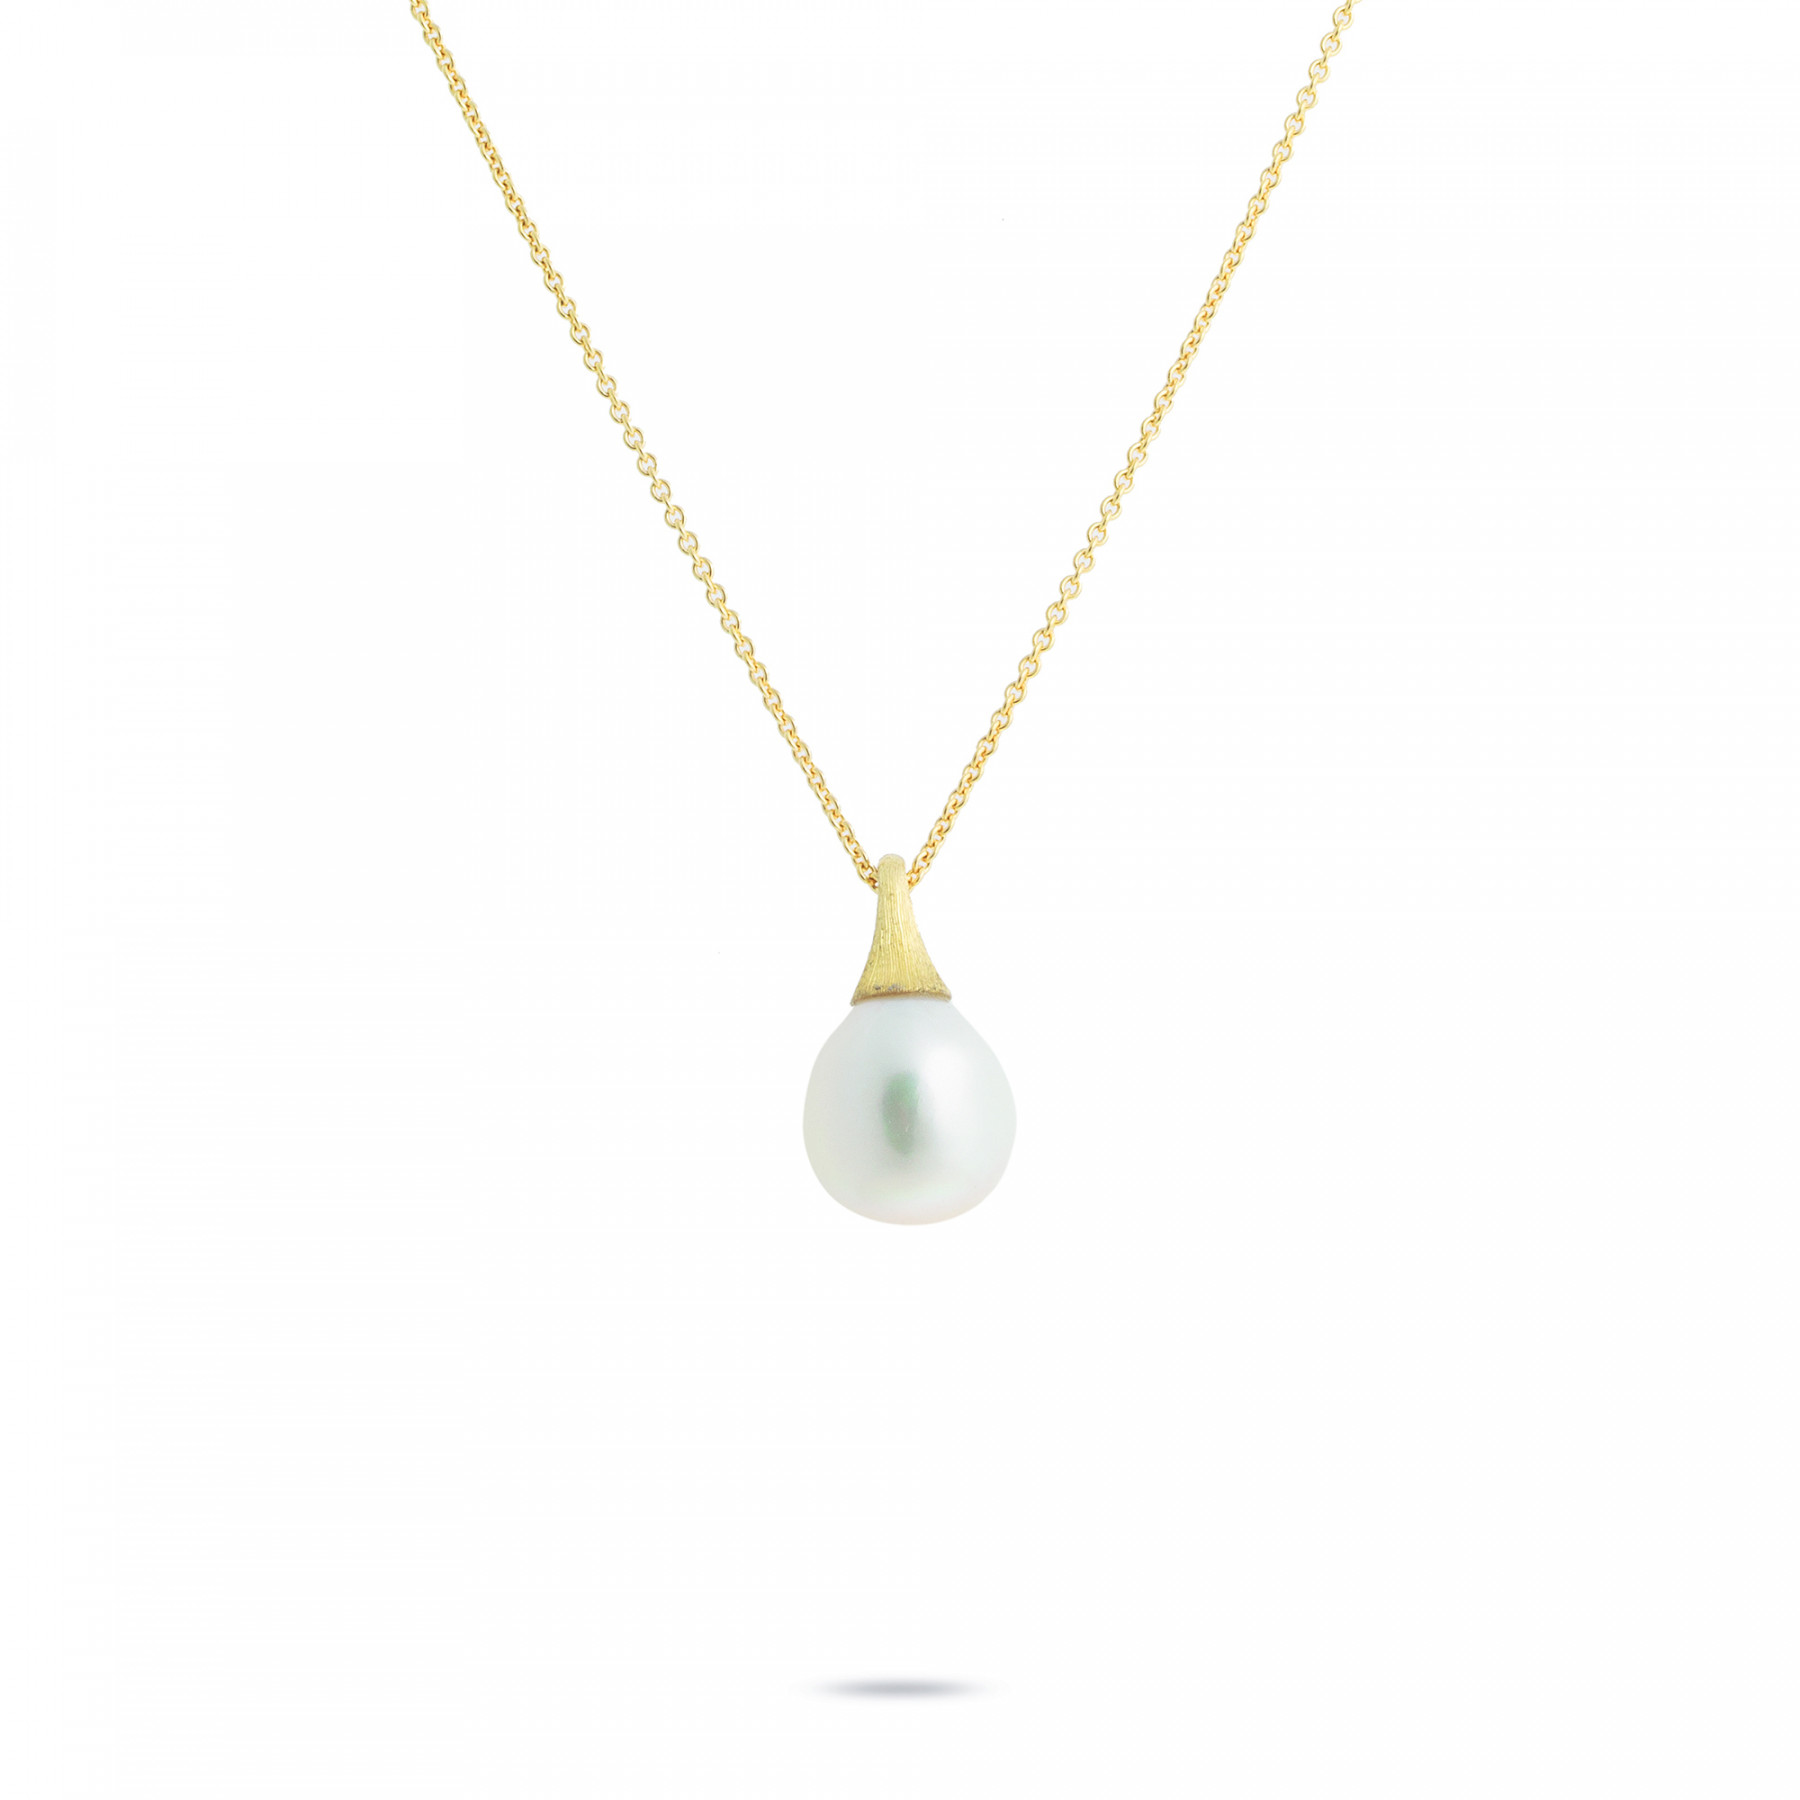 Marco Bicego Africa Boules Pearl Necklace in 18K Gold